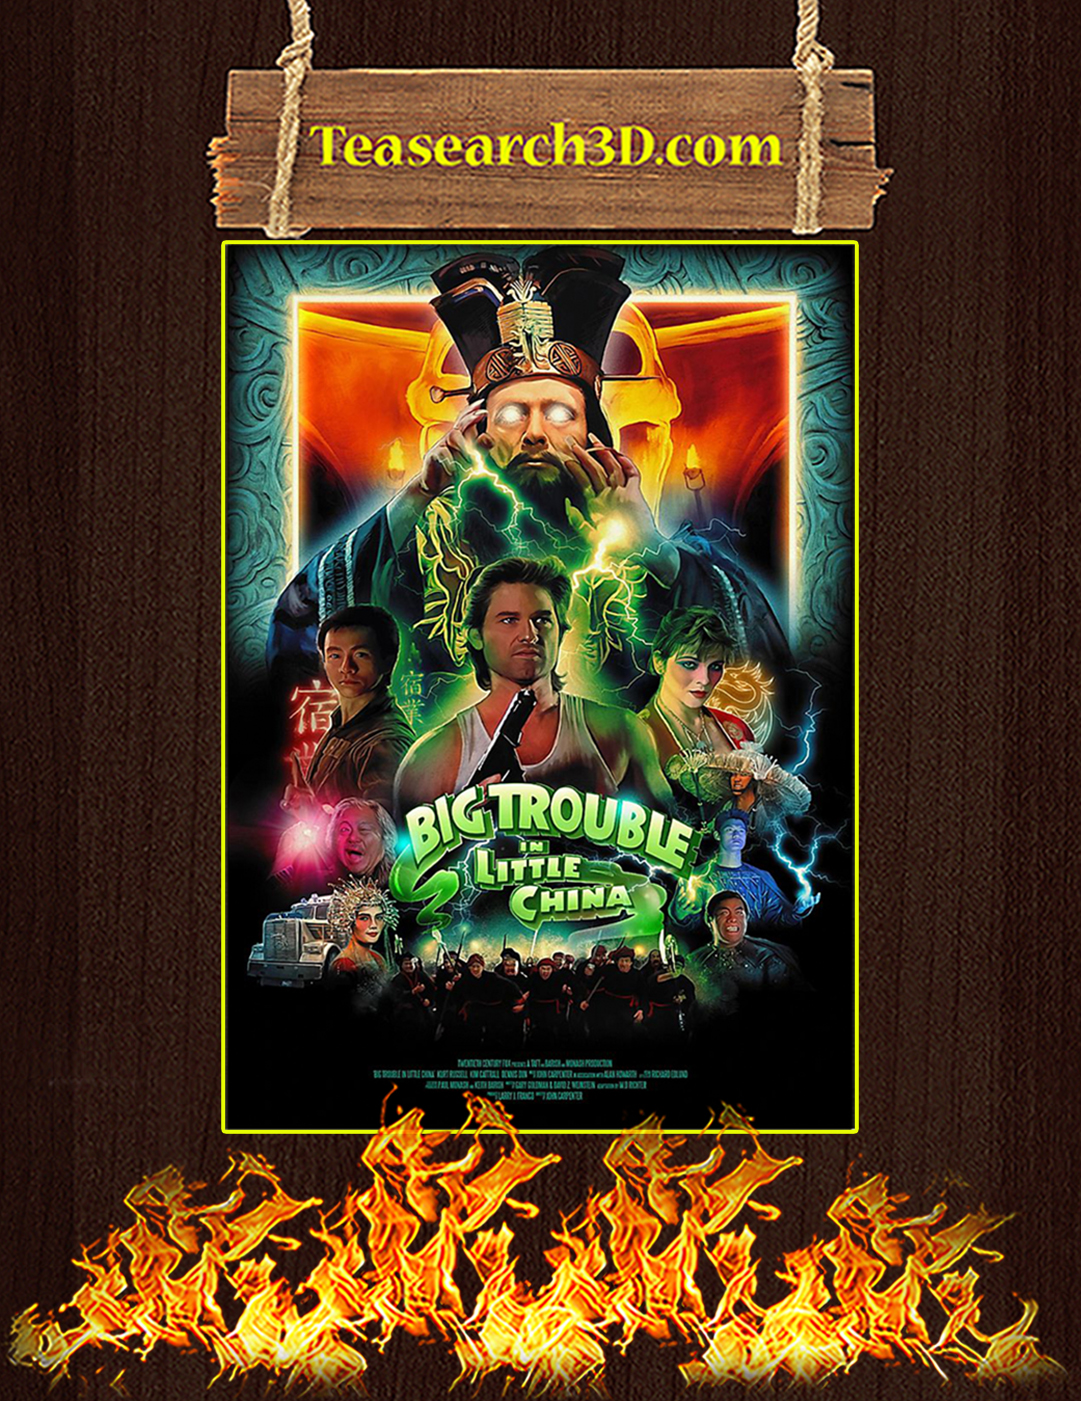 Big trouble in little china poster A2